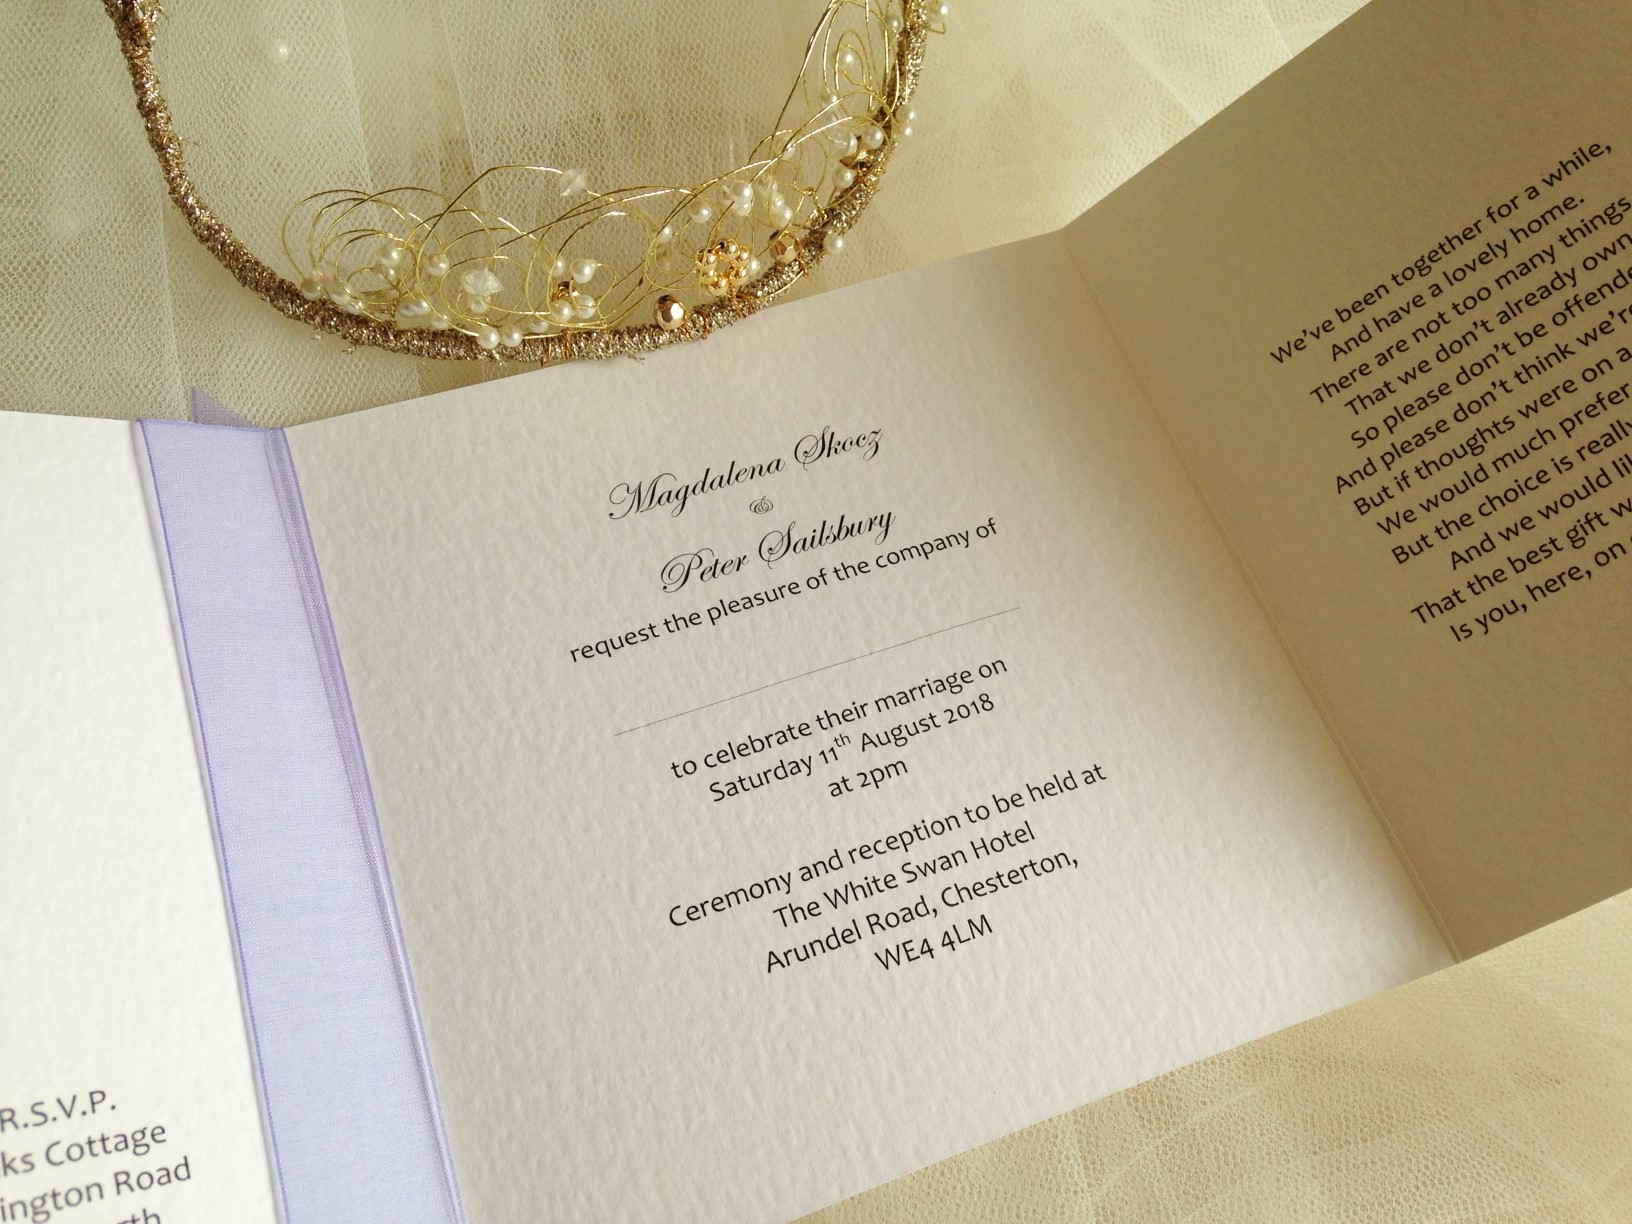 Wedding Invitations England: Eat Drink And Be Married Square Gatefold Wedding Invitations